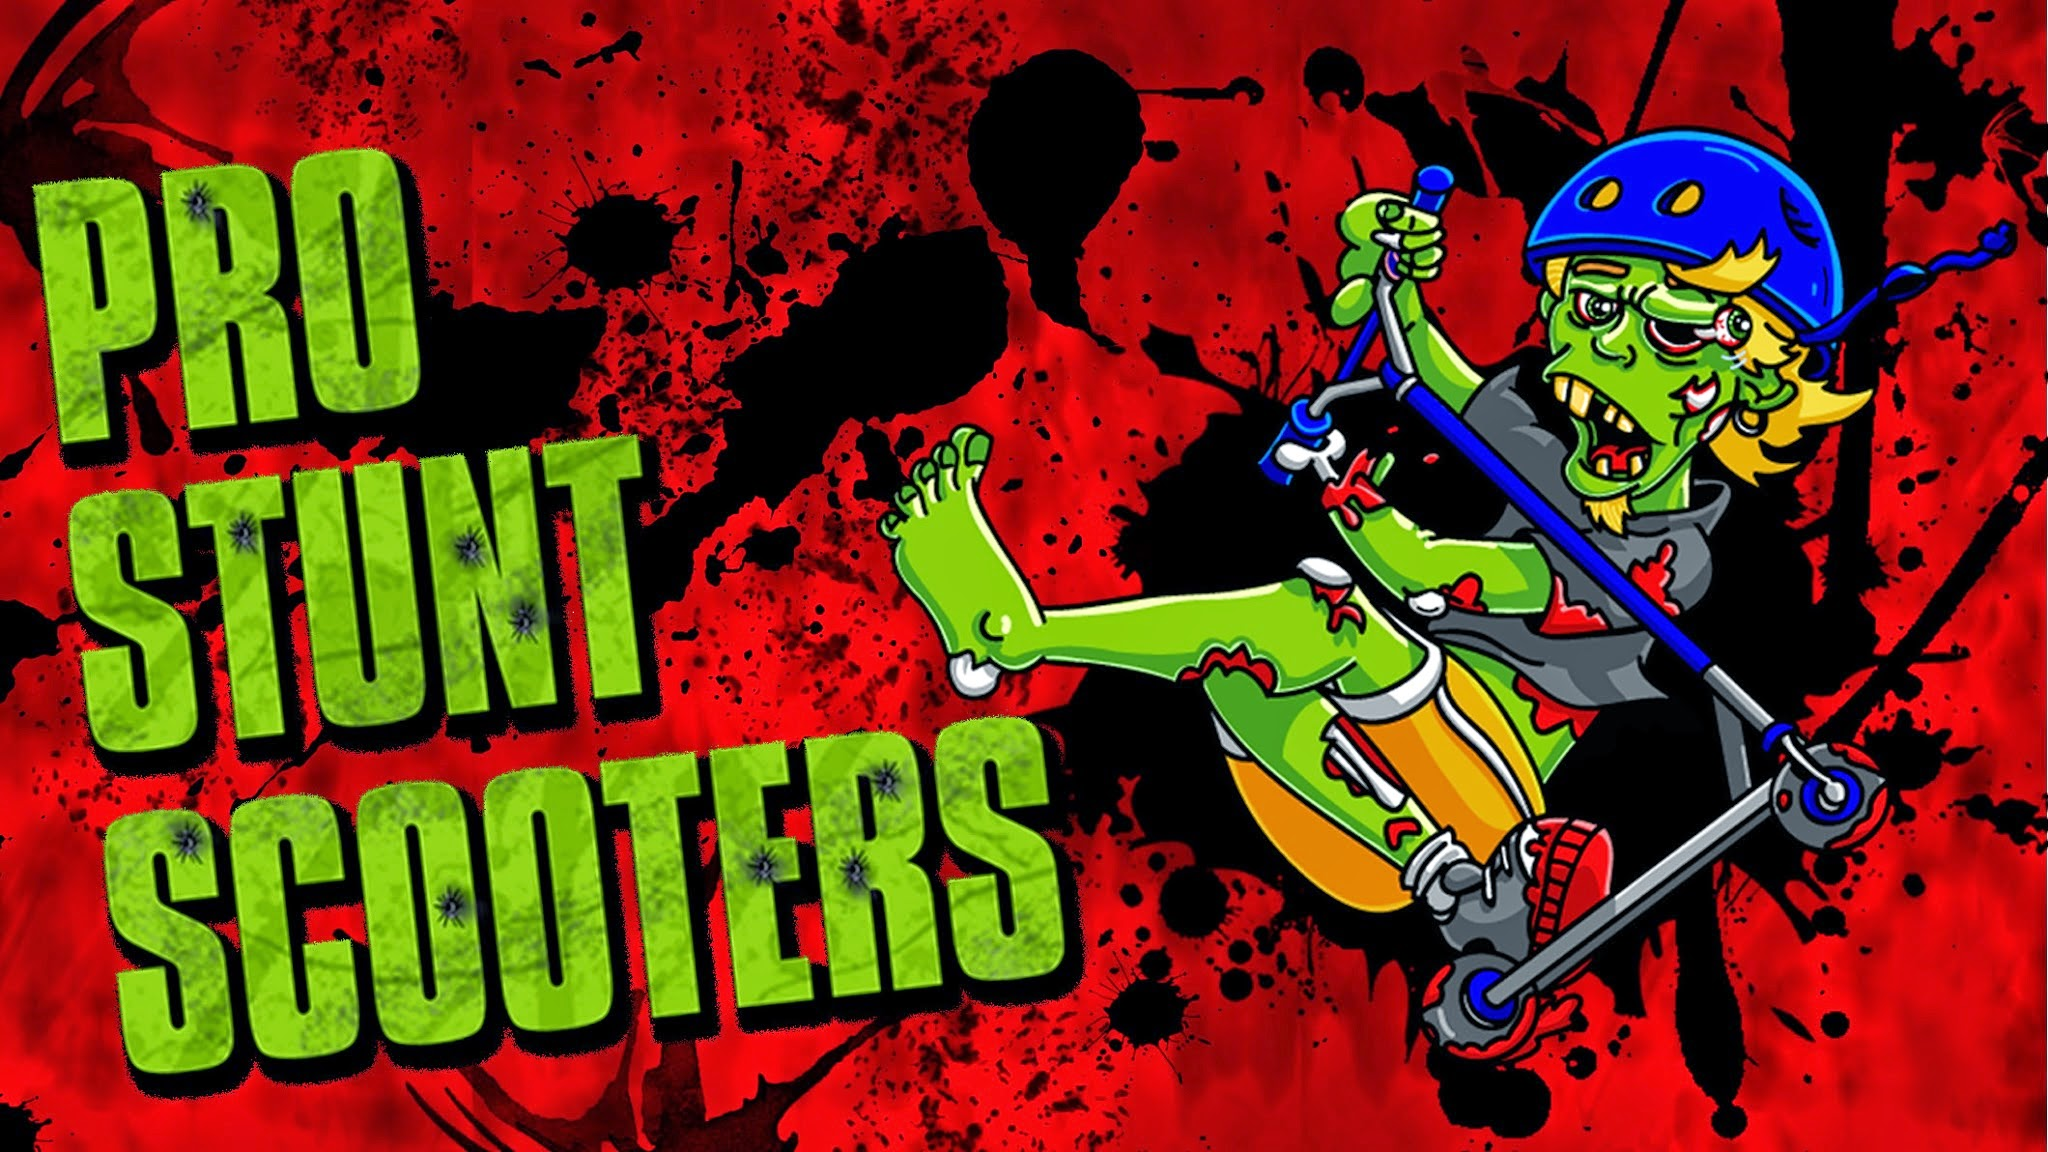 Pro Scooter Wallpapers Pro stunt scooters 2048x1152